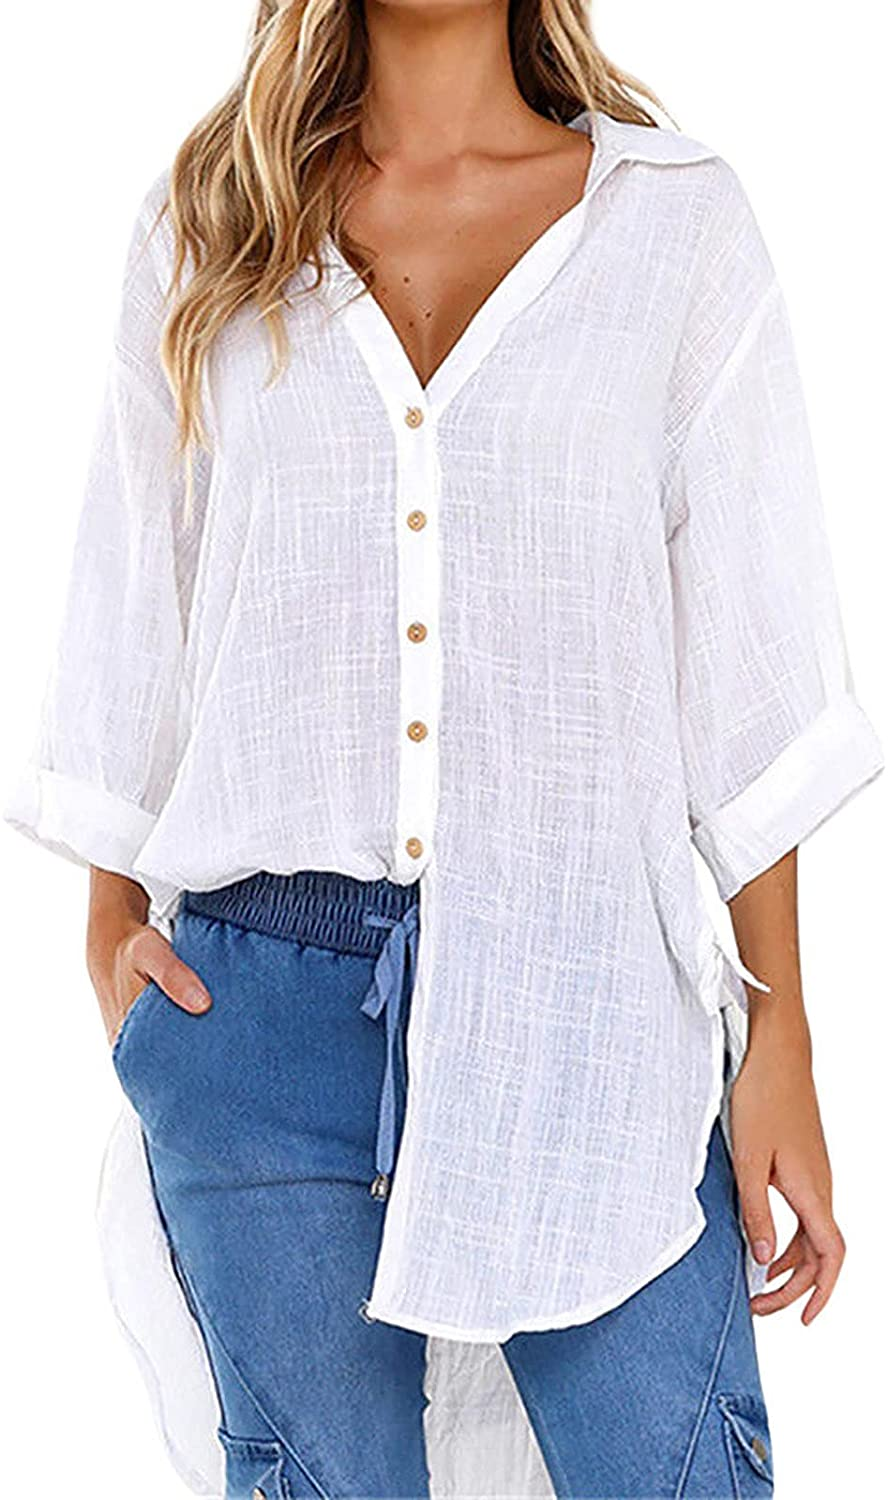 Women's Button Down V Neck Shirts Long Sleeve Blouse Roll Up Cuffed Sleeve Casual Work Plain Tops